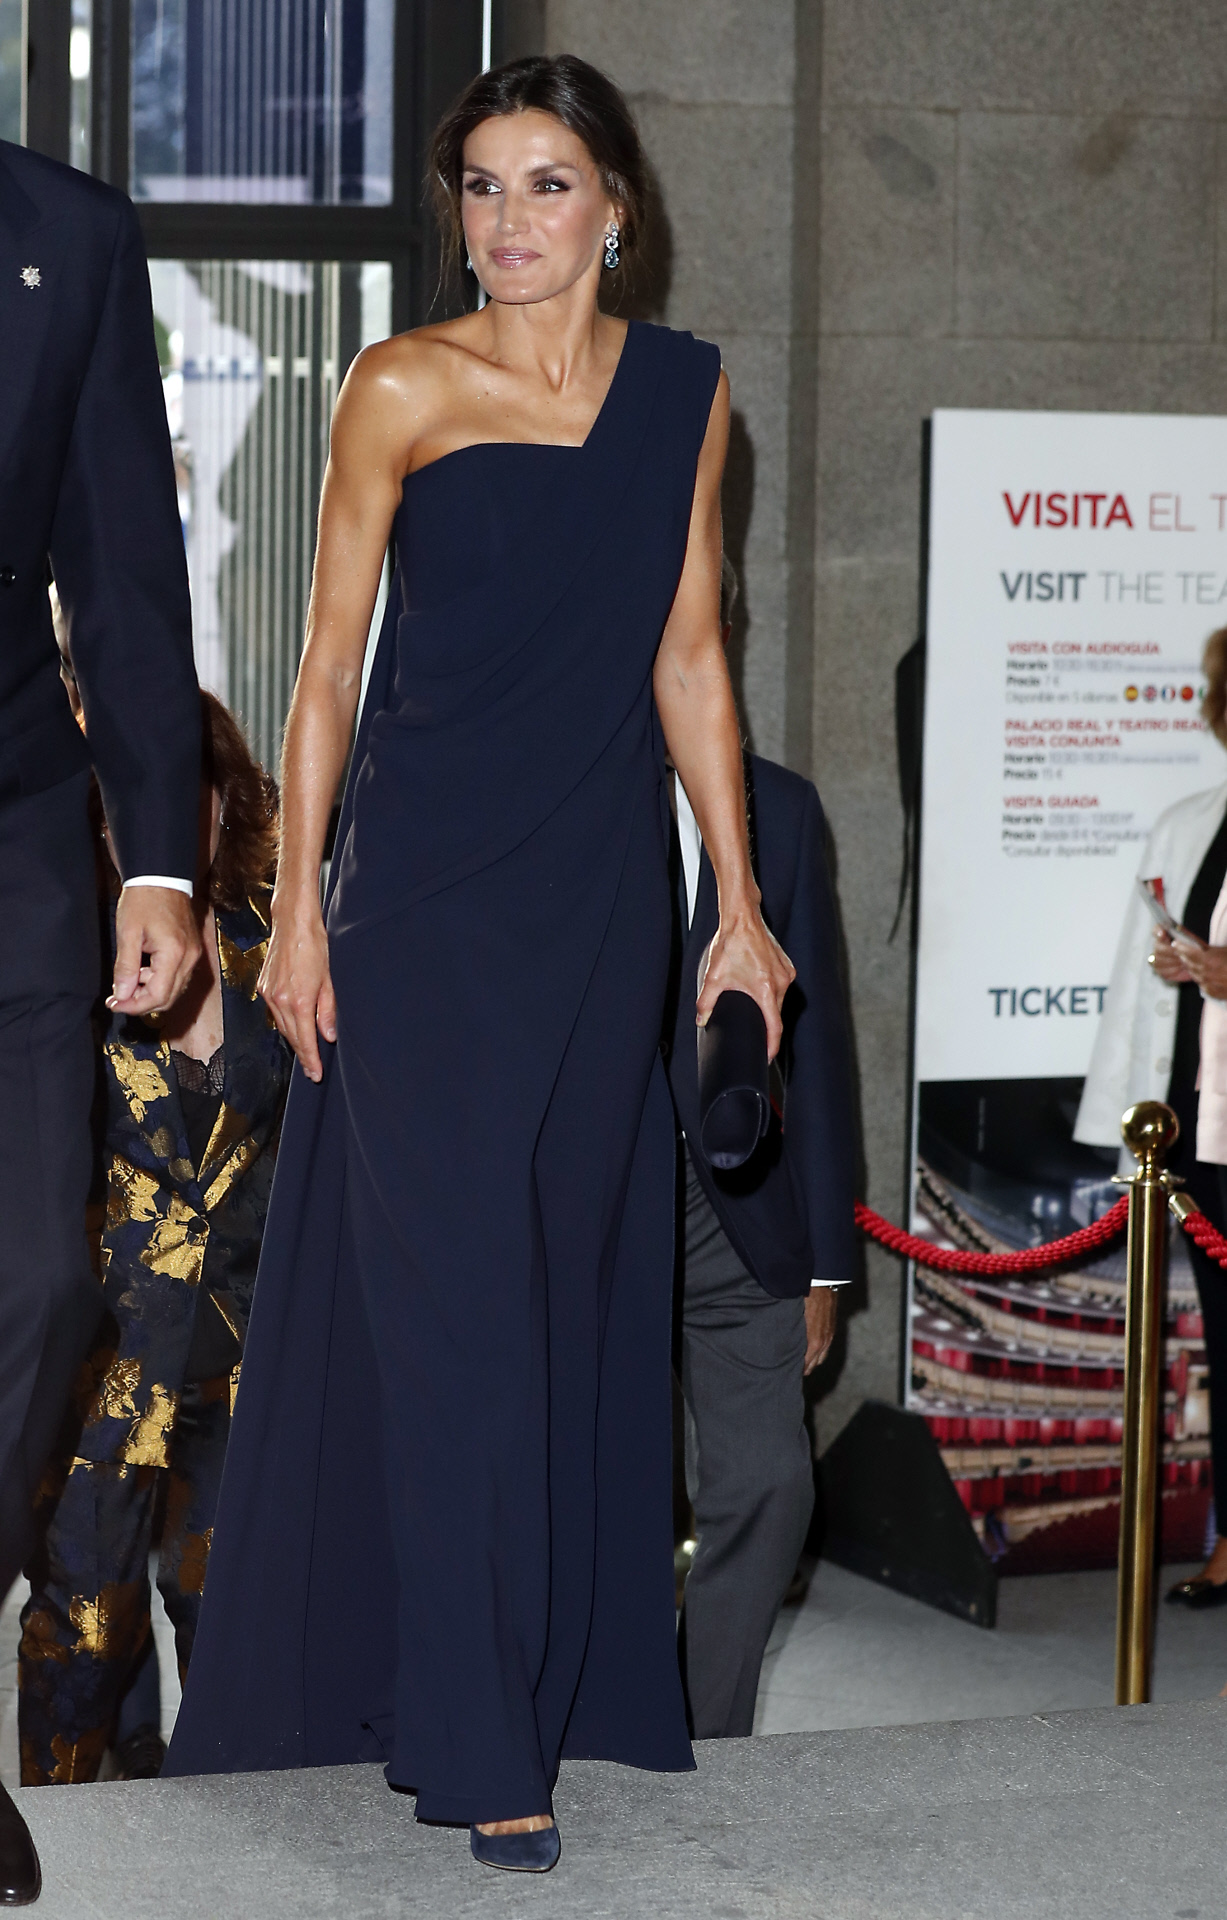 Spanish Quenn Letizia attending the opening of the season of the Royal Theatre 2018 / 2019 in Madrid on Wednesday , 19 September 2018 en la foto : vestida por la firma